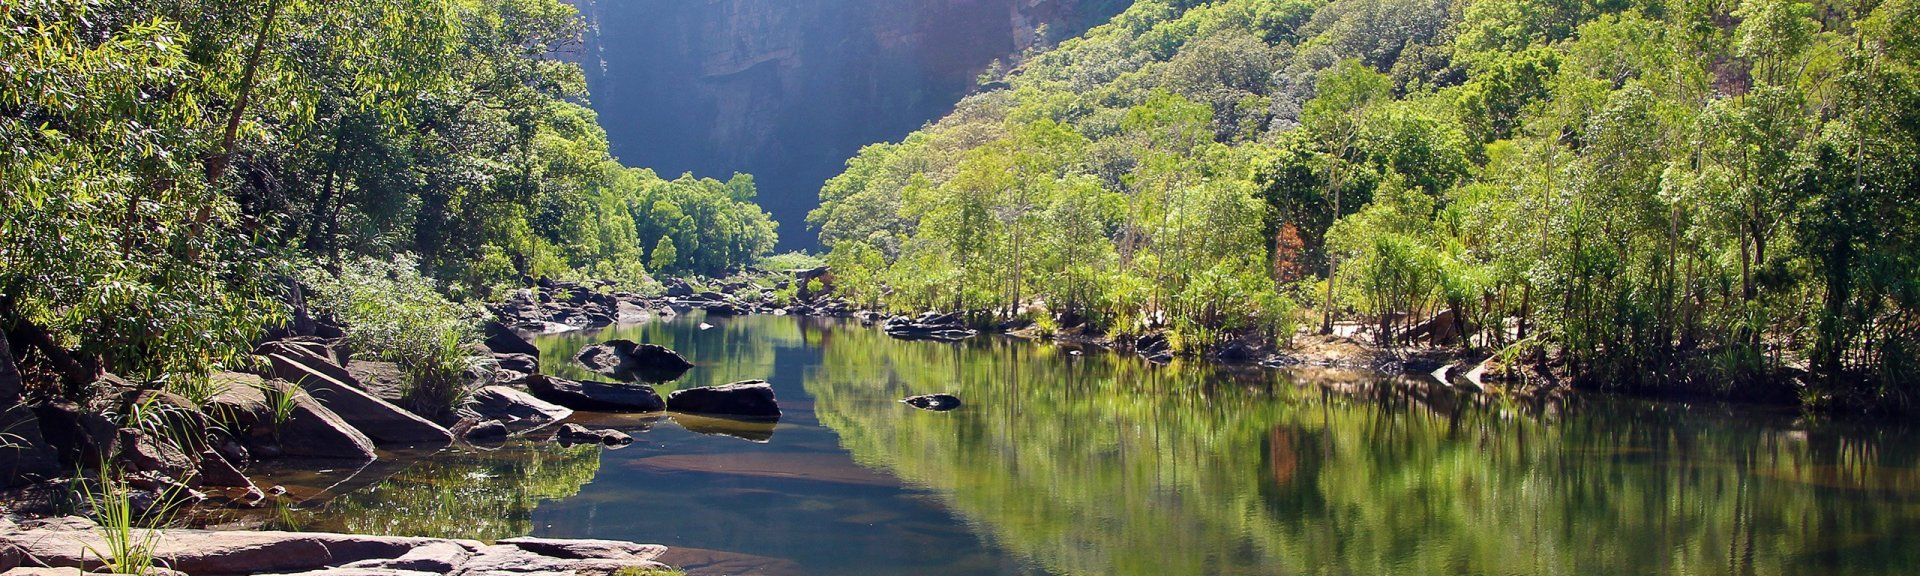 Kakadu river landscape. Photo by G Adventures and Leah Griffin.